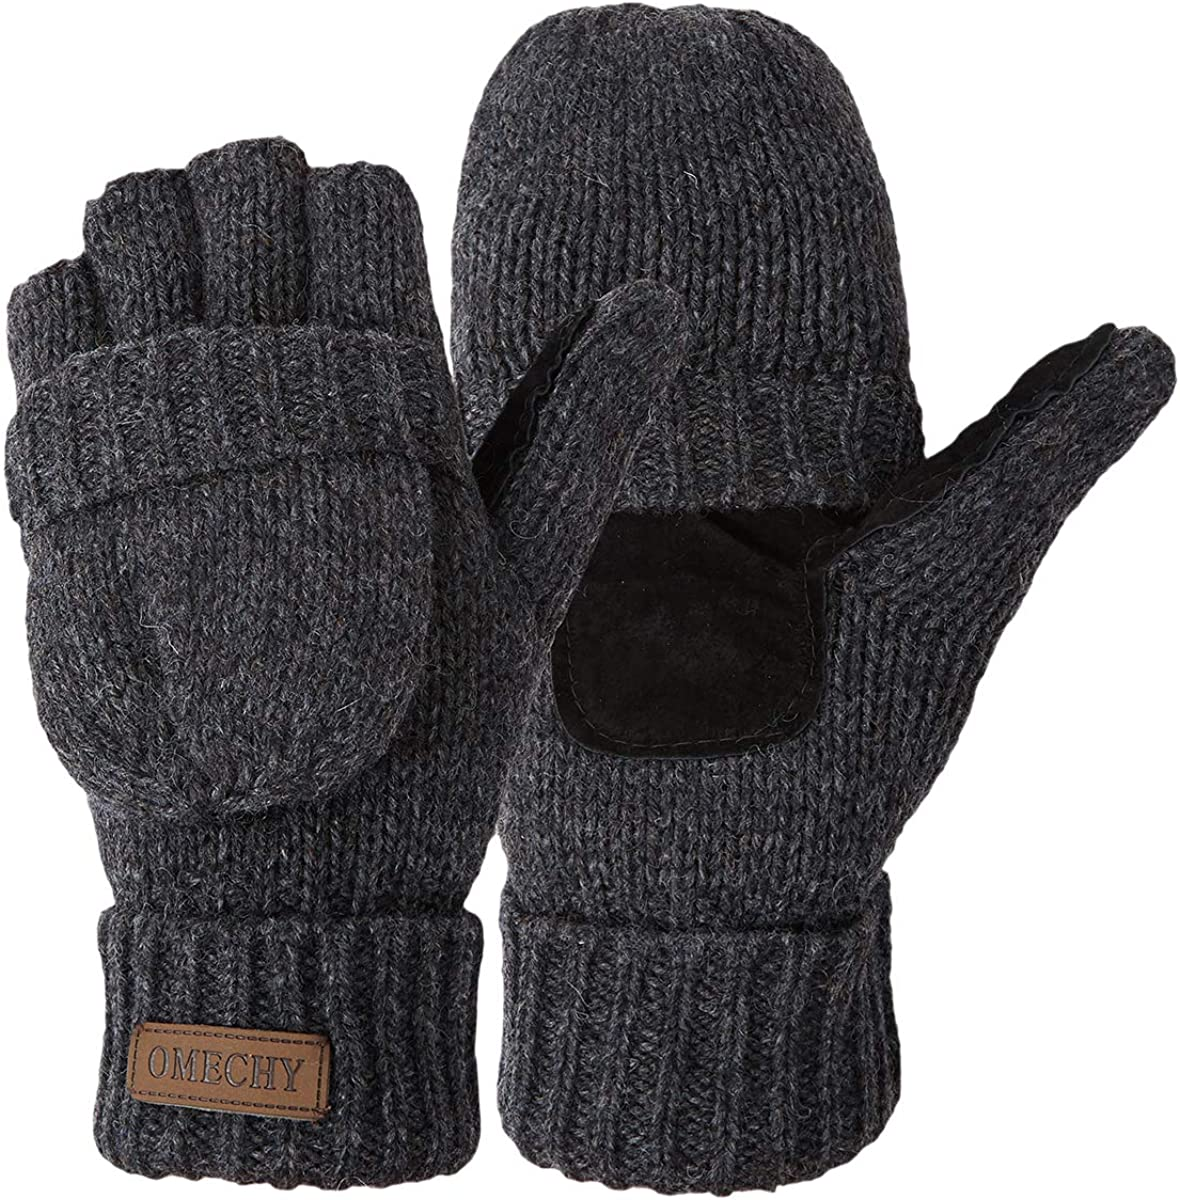 Winter Knitted Fingerless Gloves Thermal Insulation Warm Convertible Mittens Flap Cover for Men Women